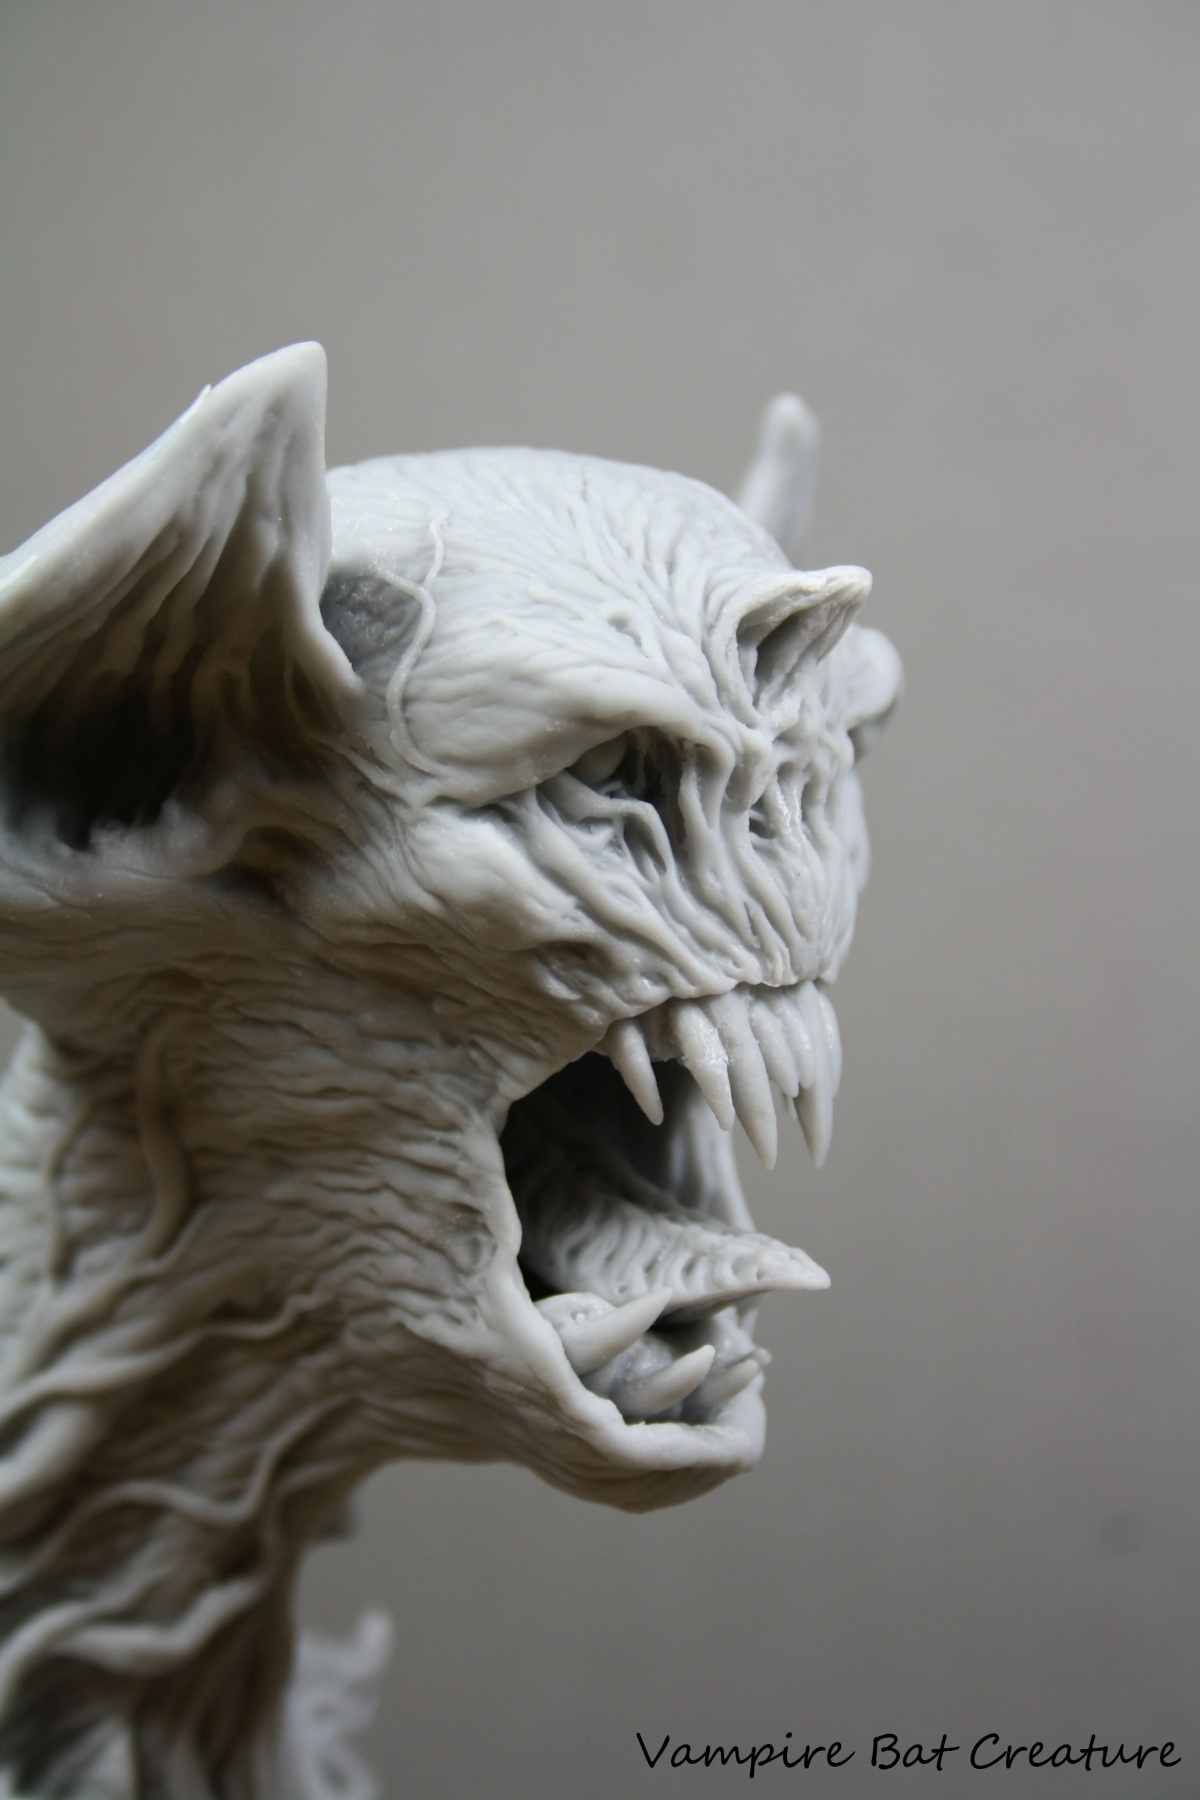 Vampire Bat Creature By George Tsougkouzidis 183 Putty Amp Paint